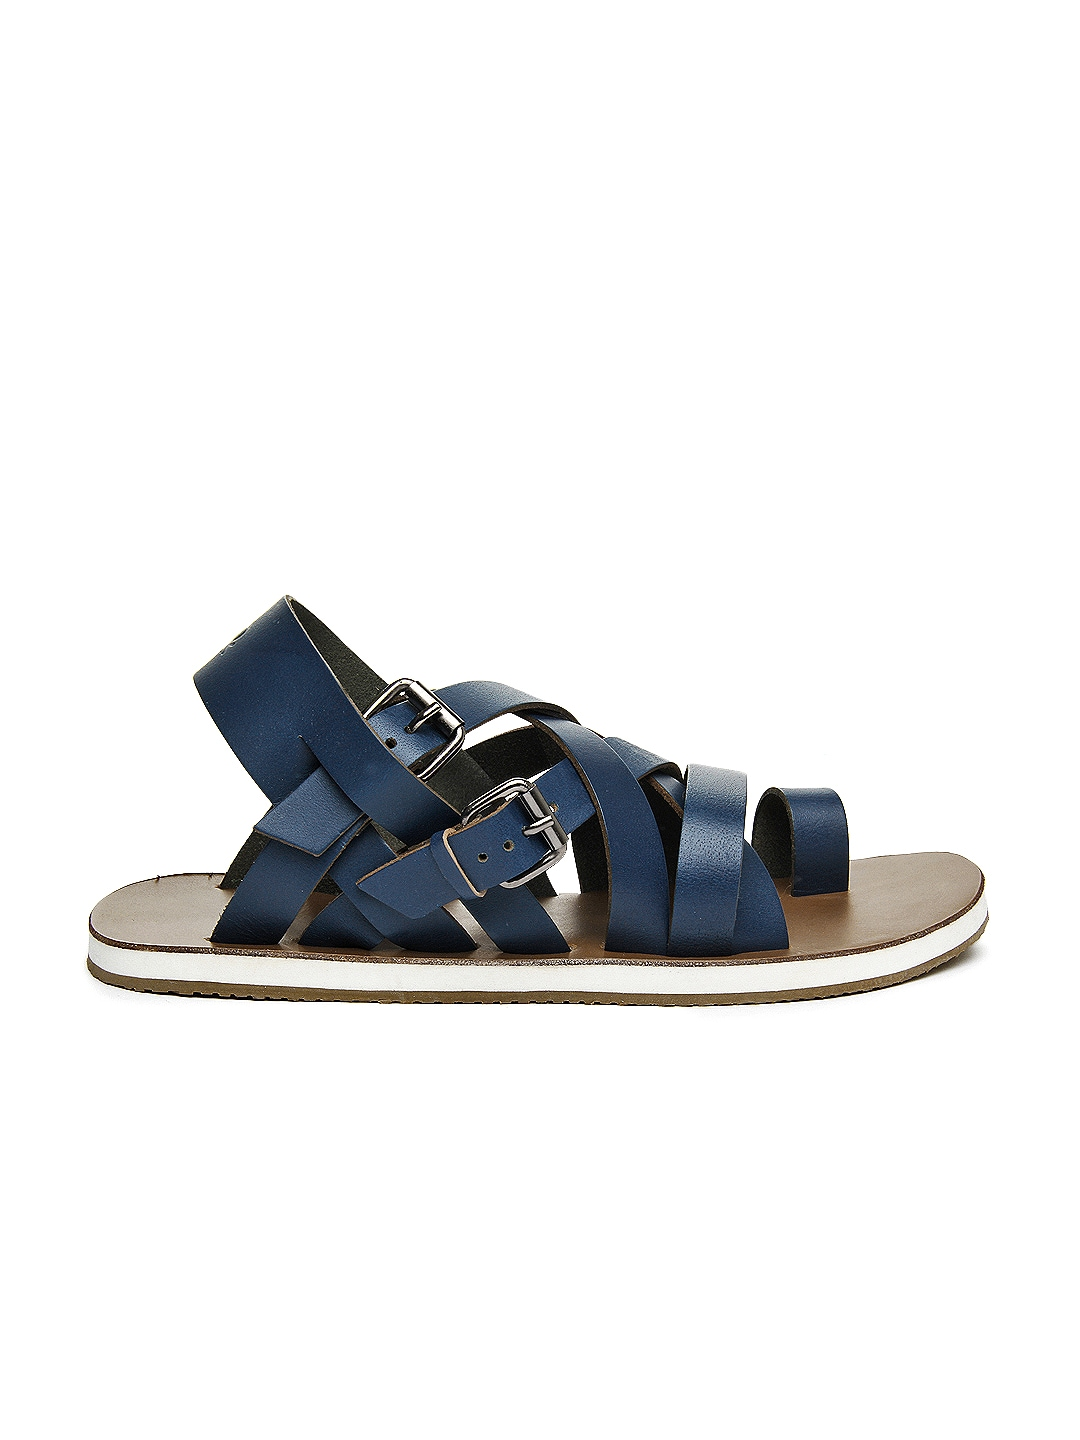 United Colors of Benetton Sandals United Colors of Benetton Men